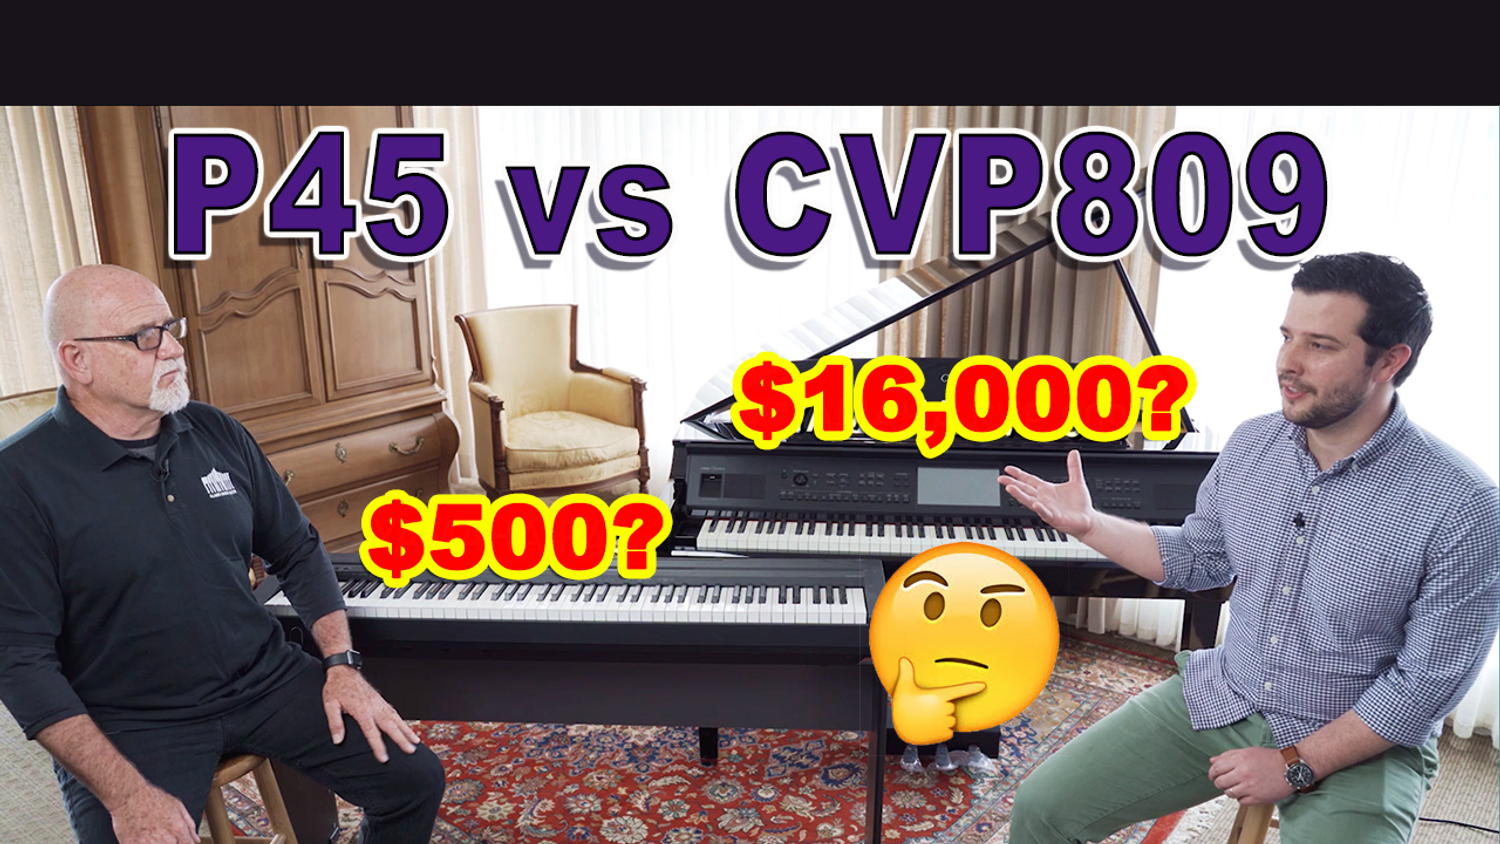 Yamaha P45 vs CVP809 - What's the Difference Between a $500 and a $16,000 Digital Piano?